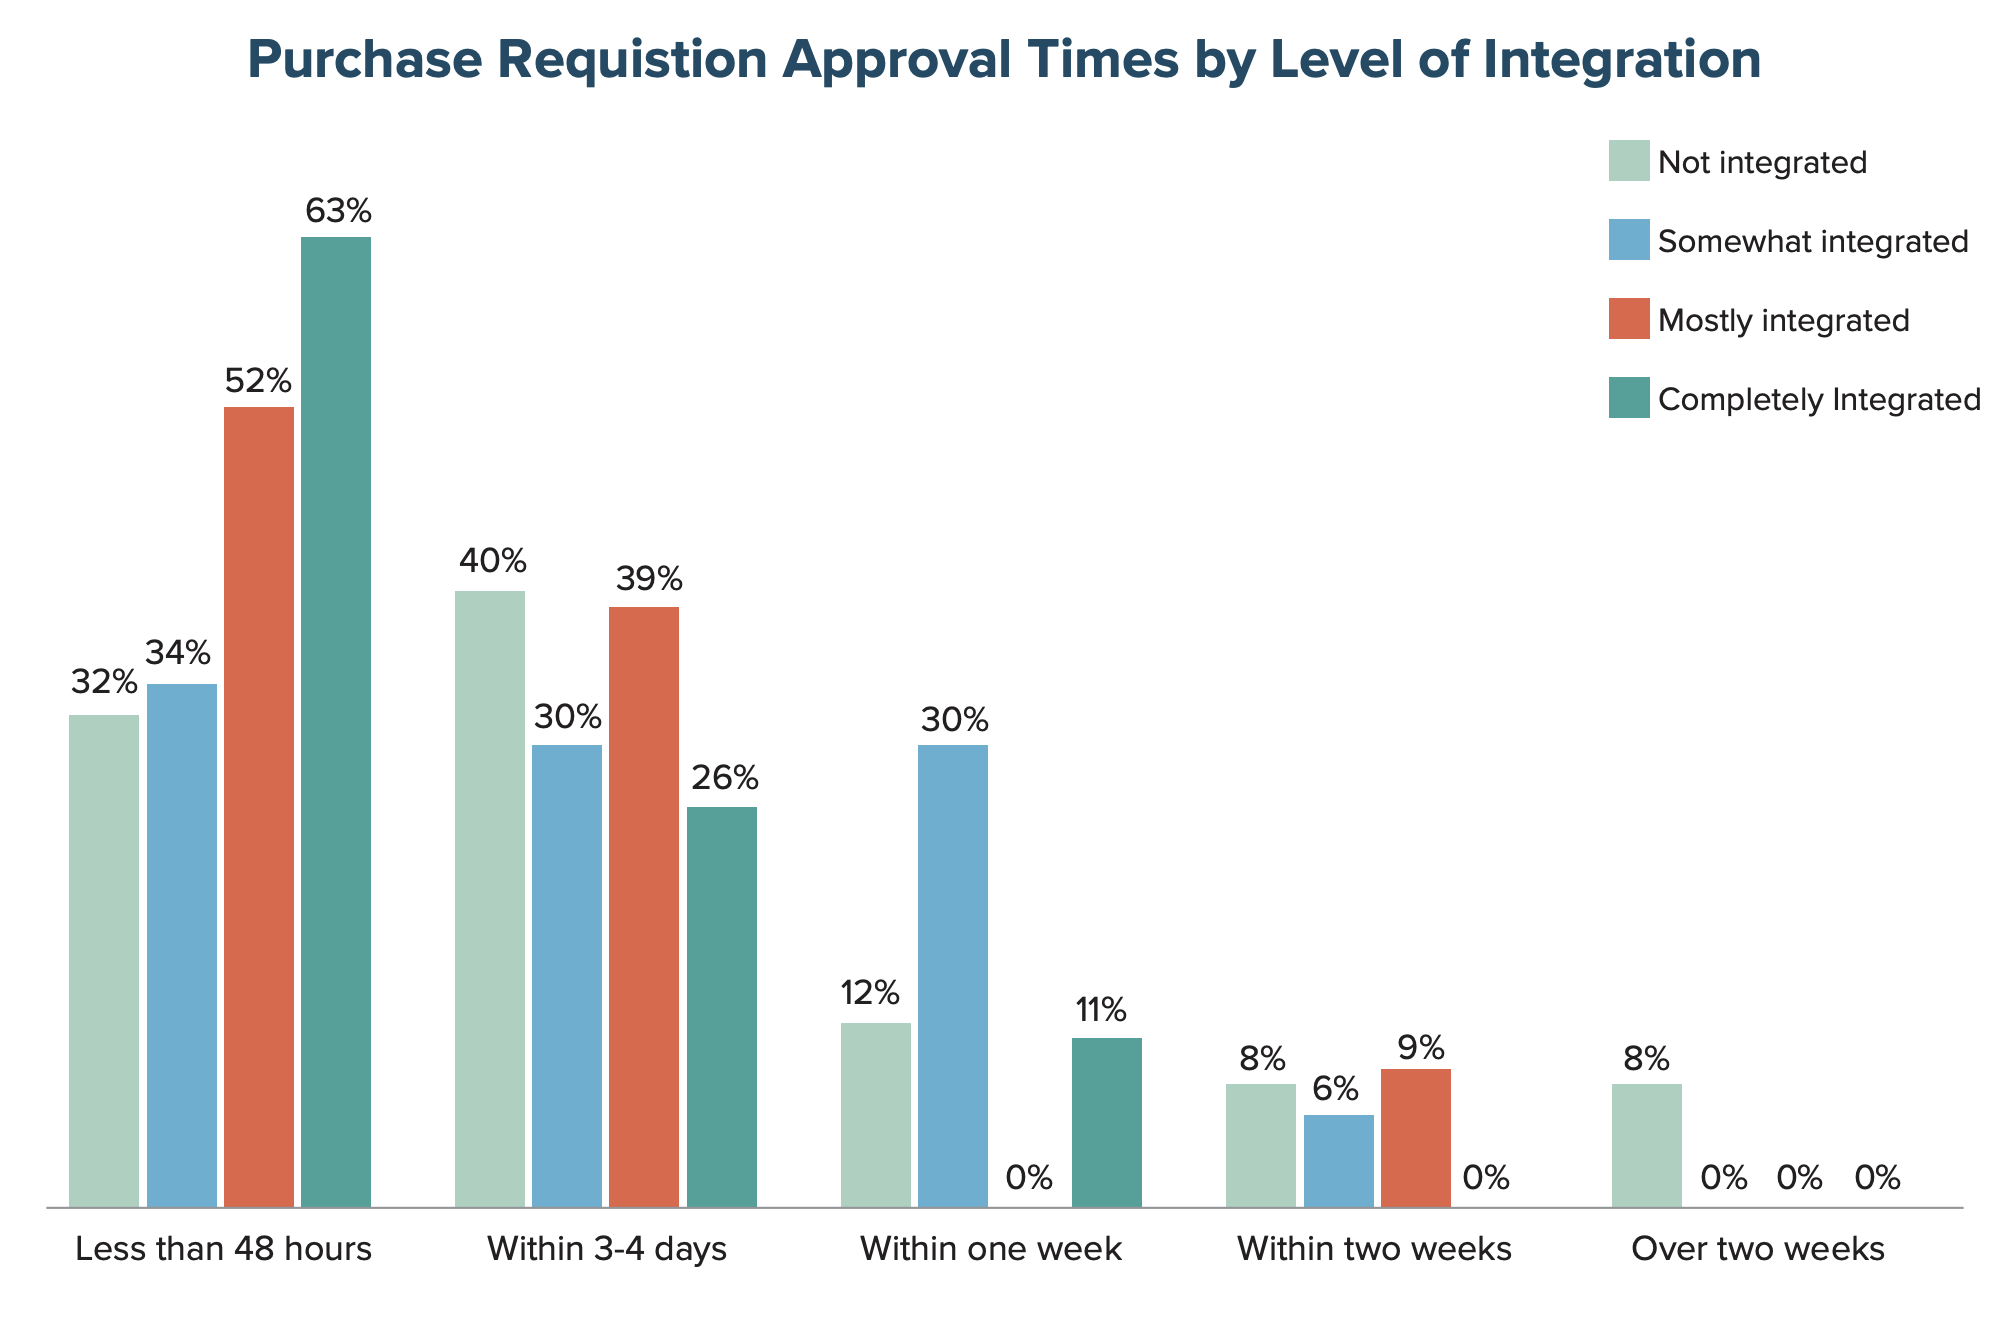 Purchase Requisition Approval Times by Level of Integration